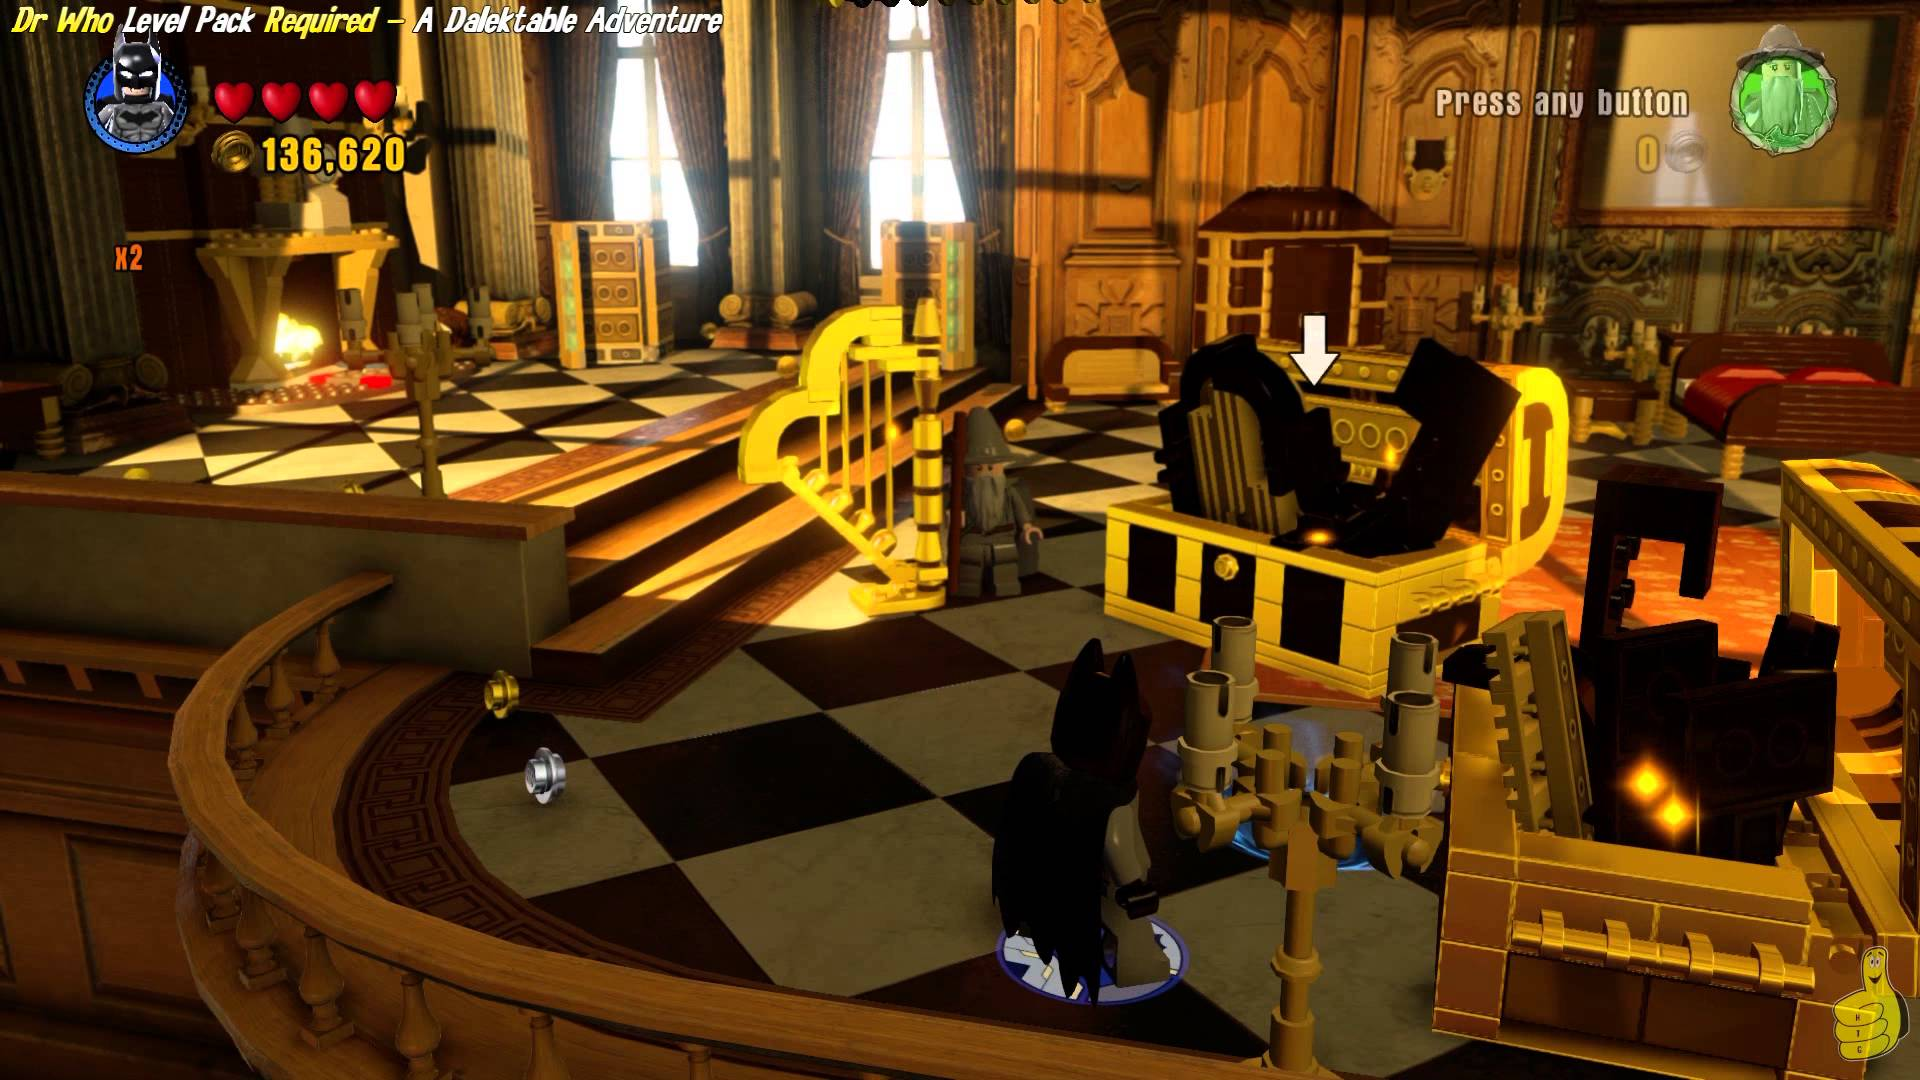 Lego Dimensions: The Palace of Versailles Doctor Who Easter Egg – HTG